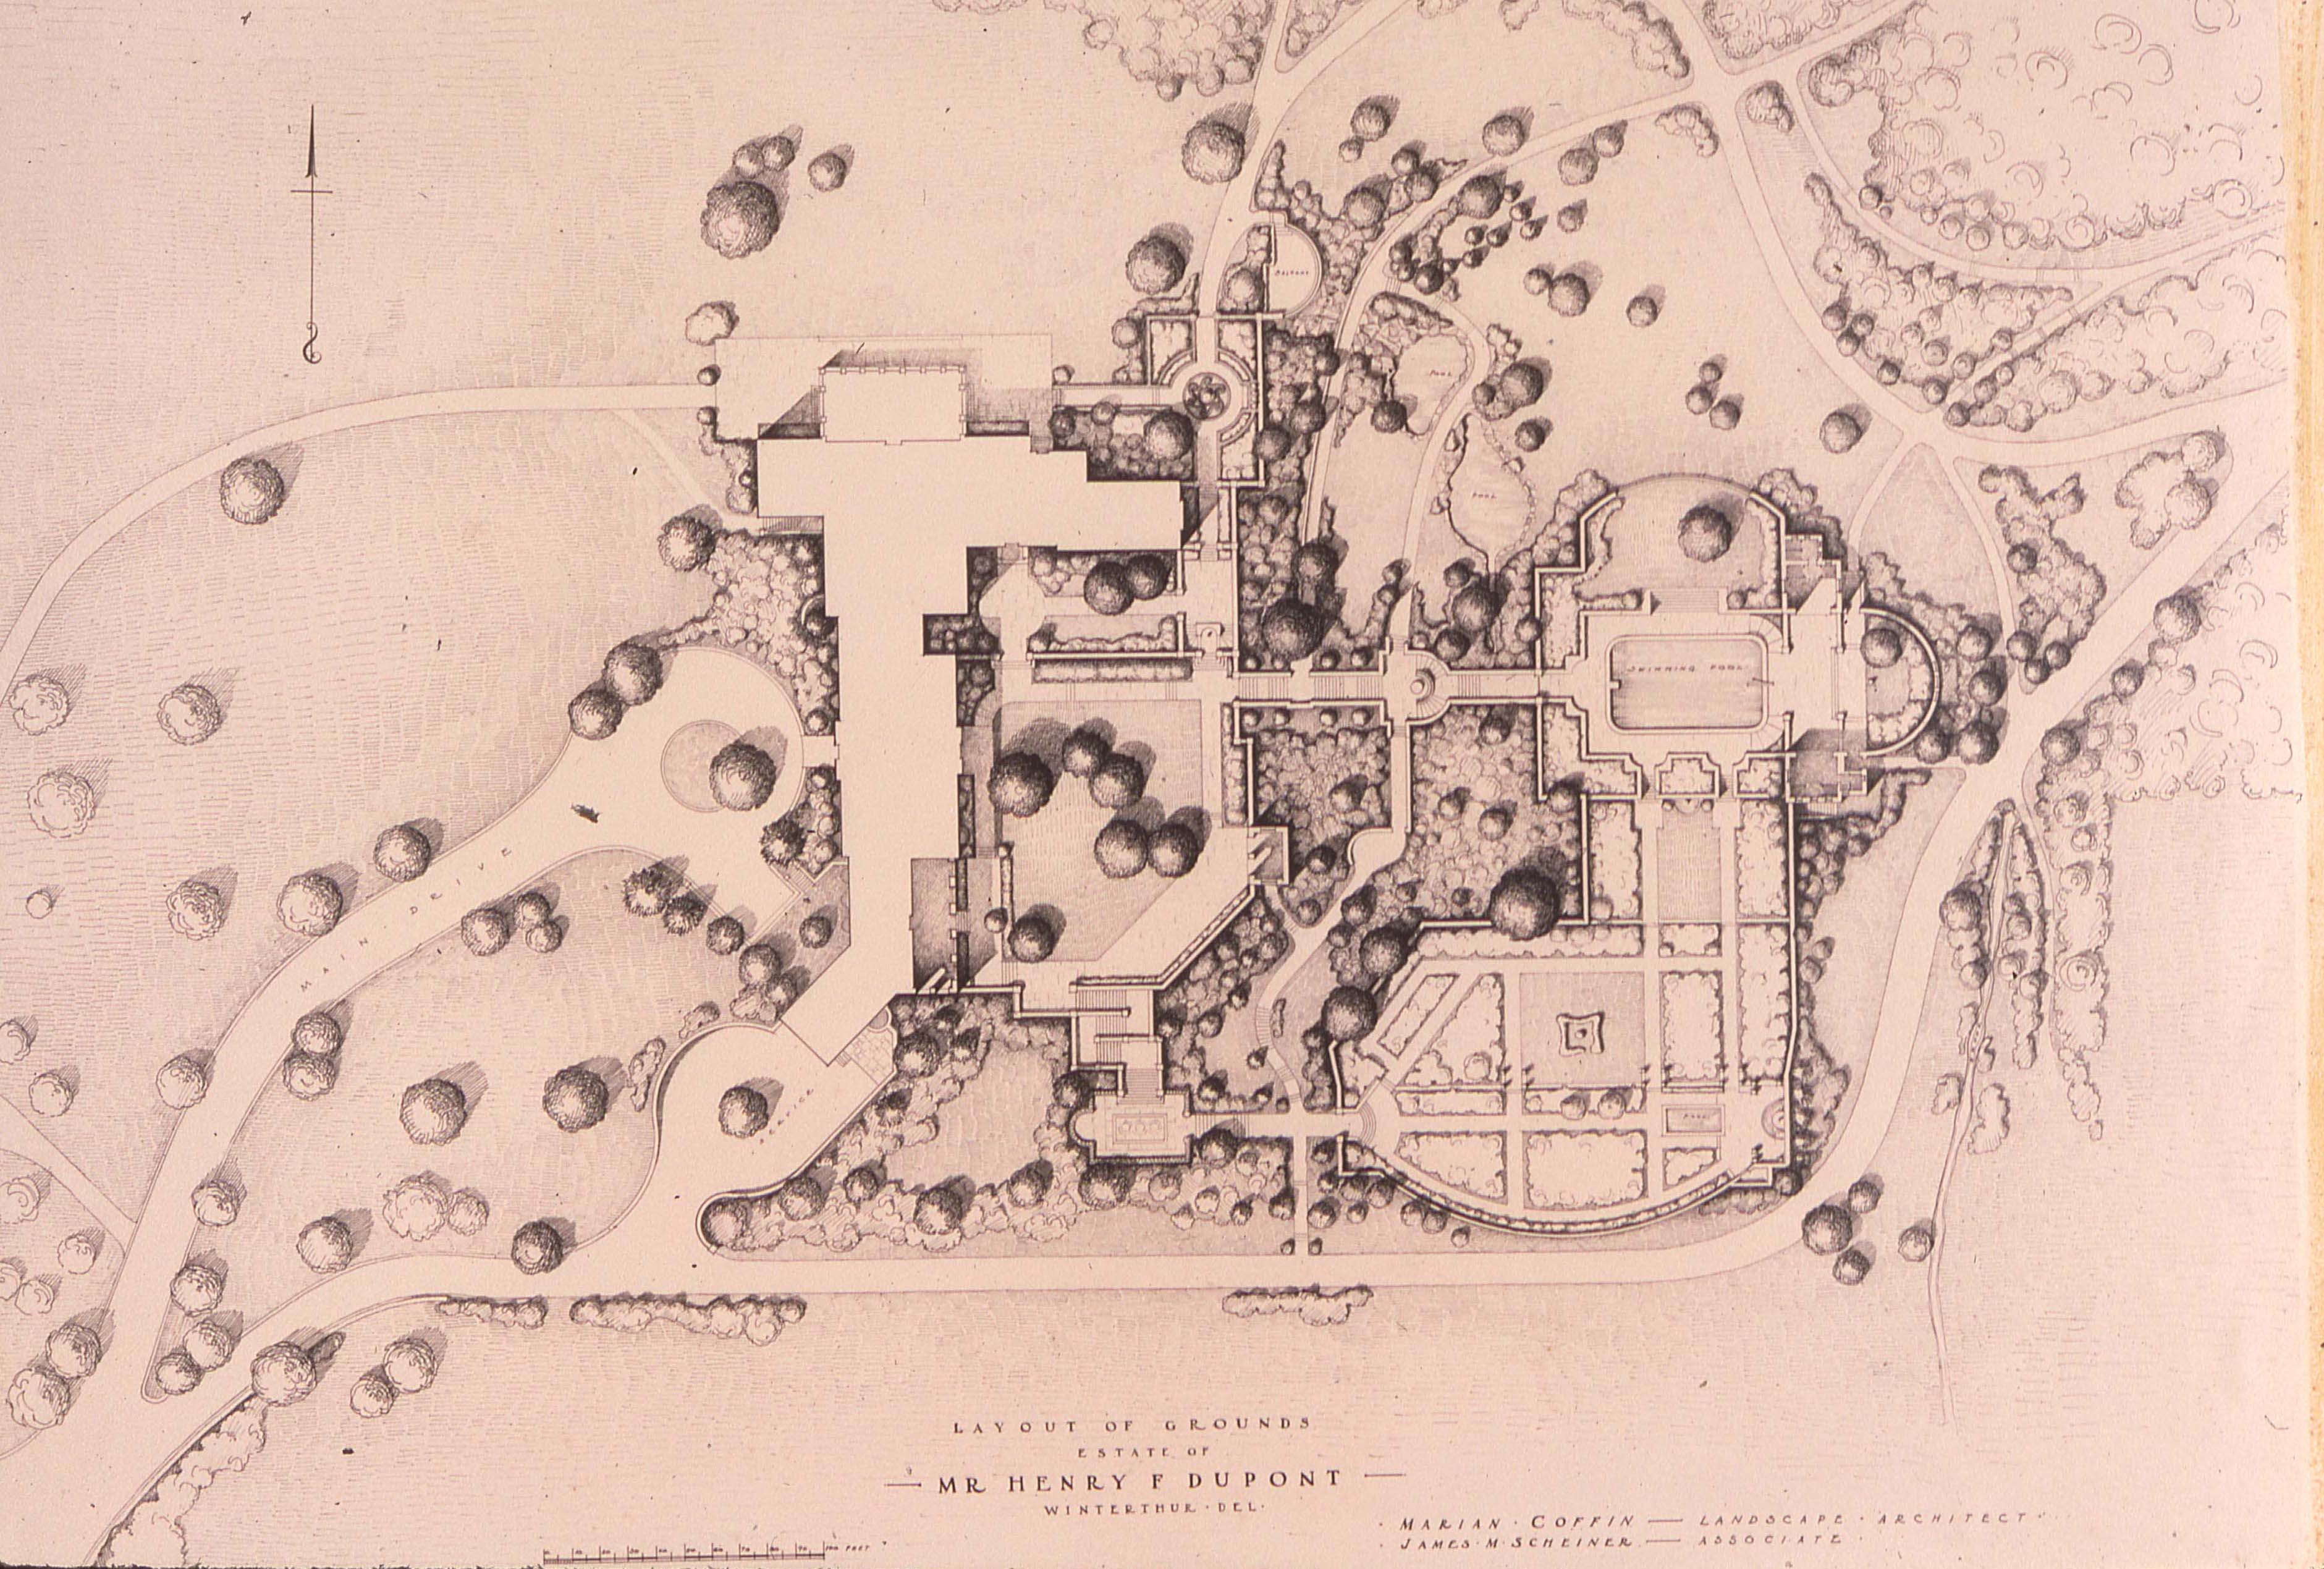 Layout of the Grounds, Marian Coffin. Winterthur Archives